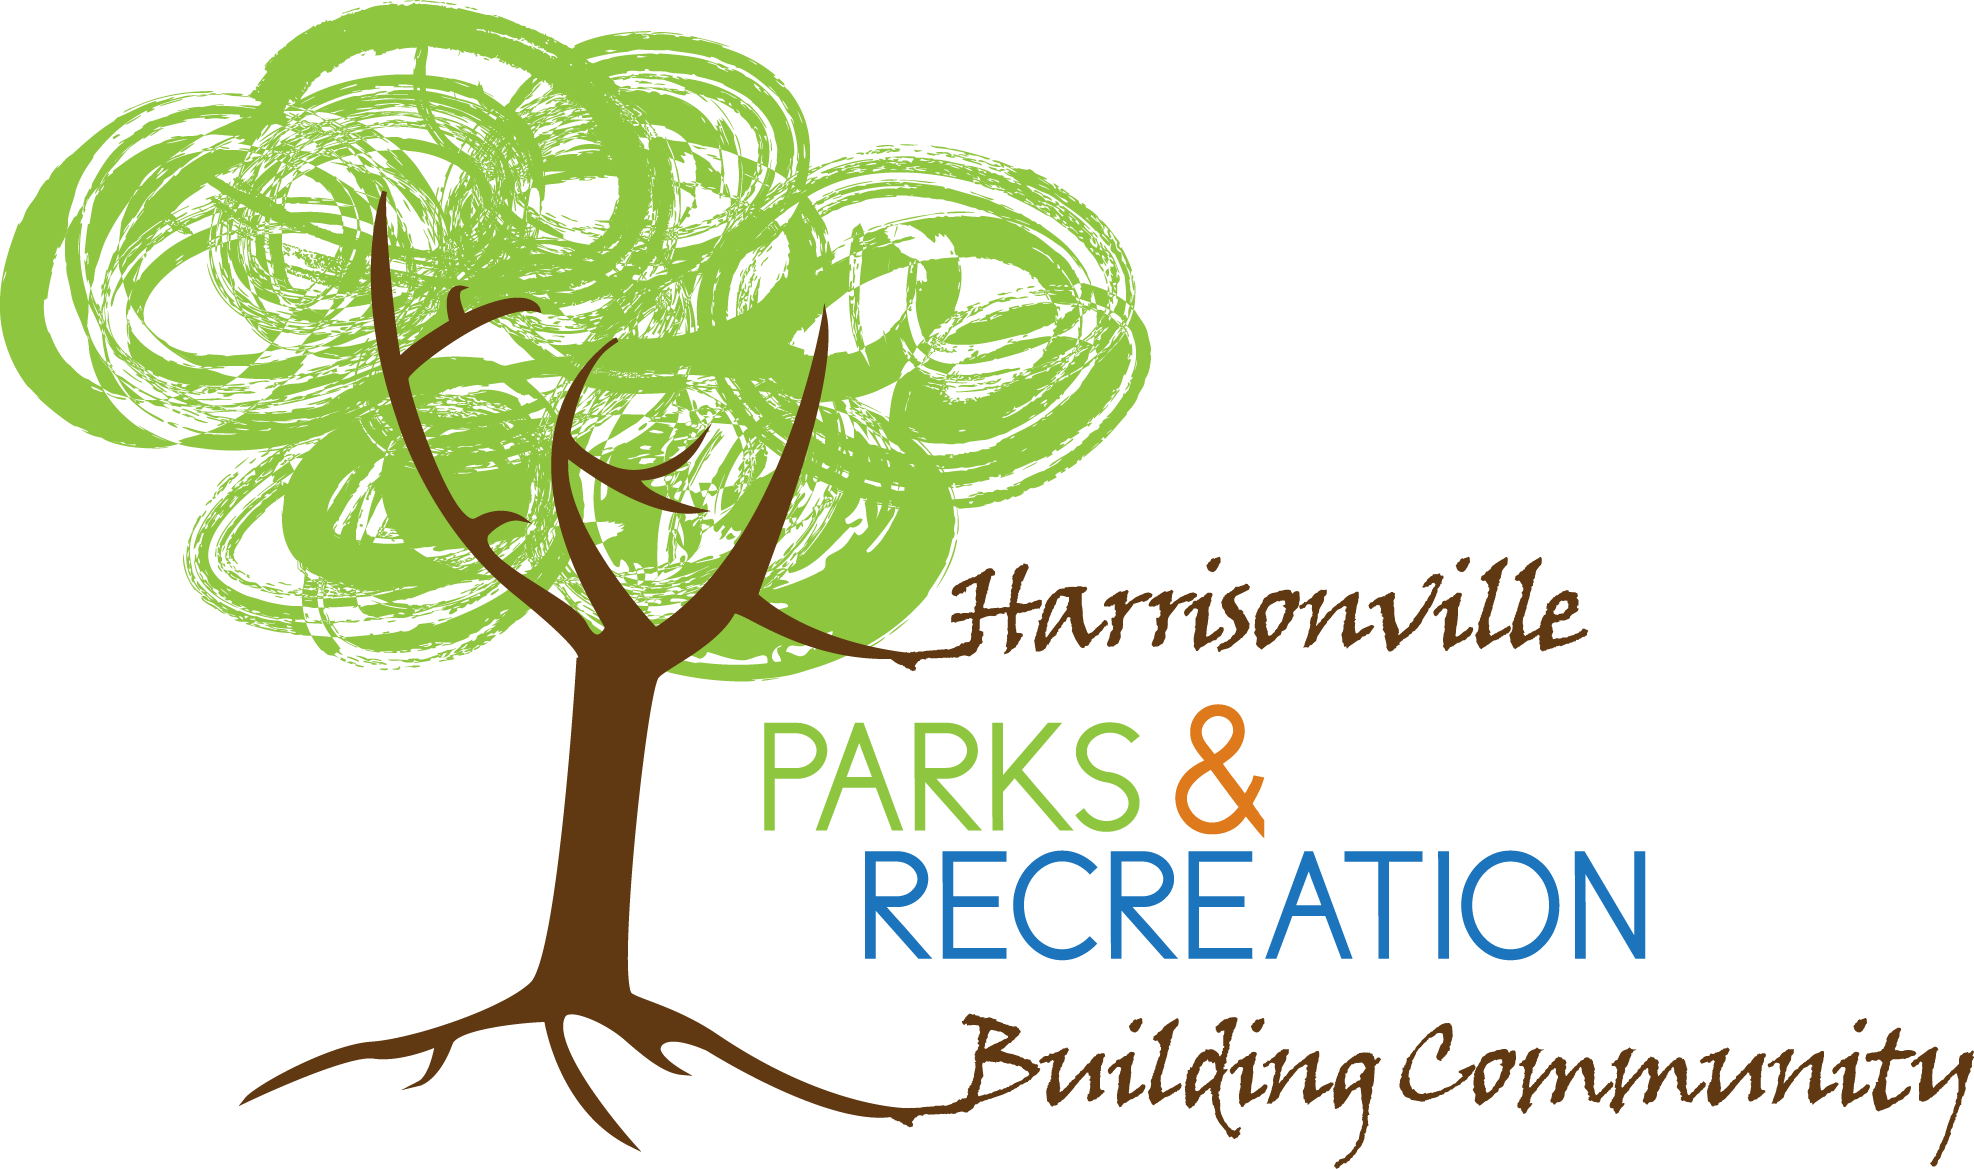 Harrisonville Parks and Recreation Building Community with Tree